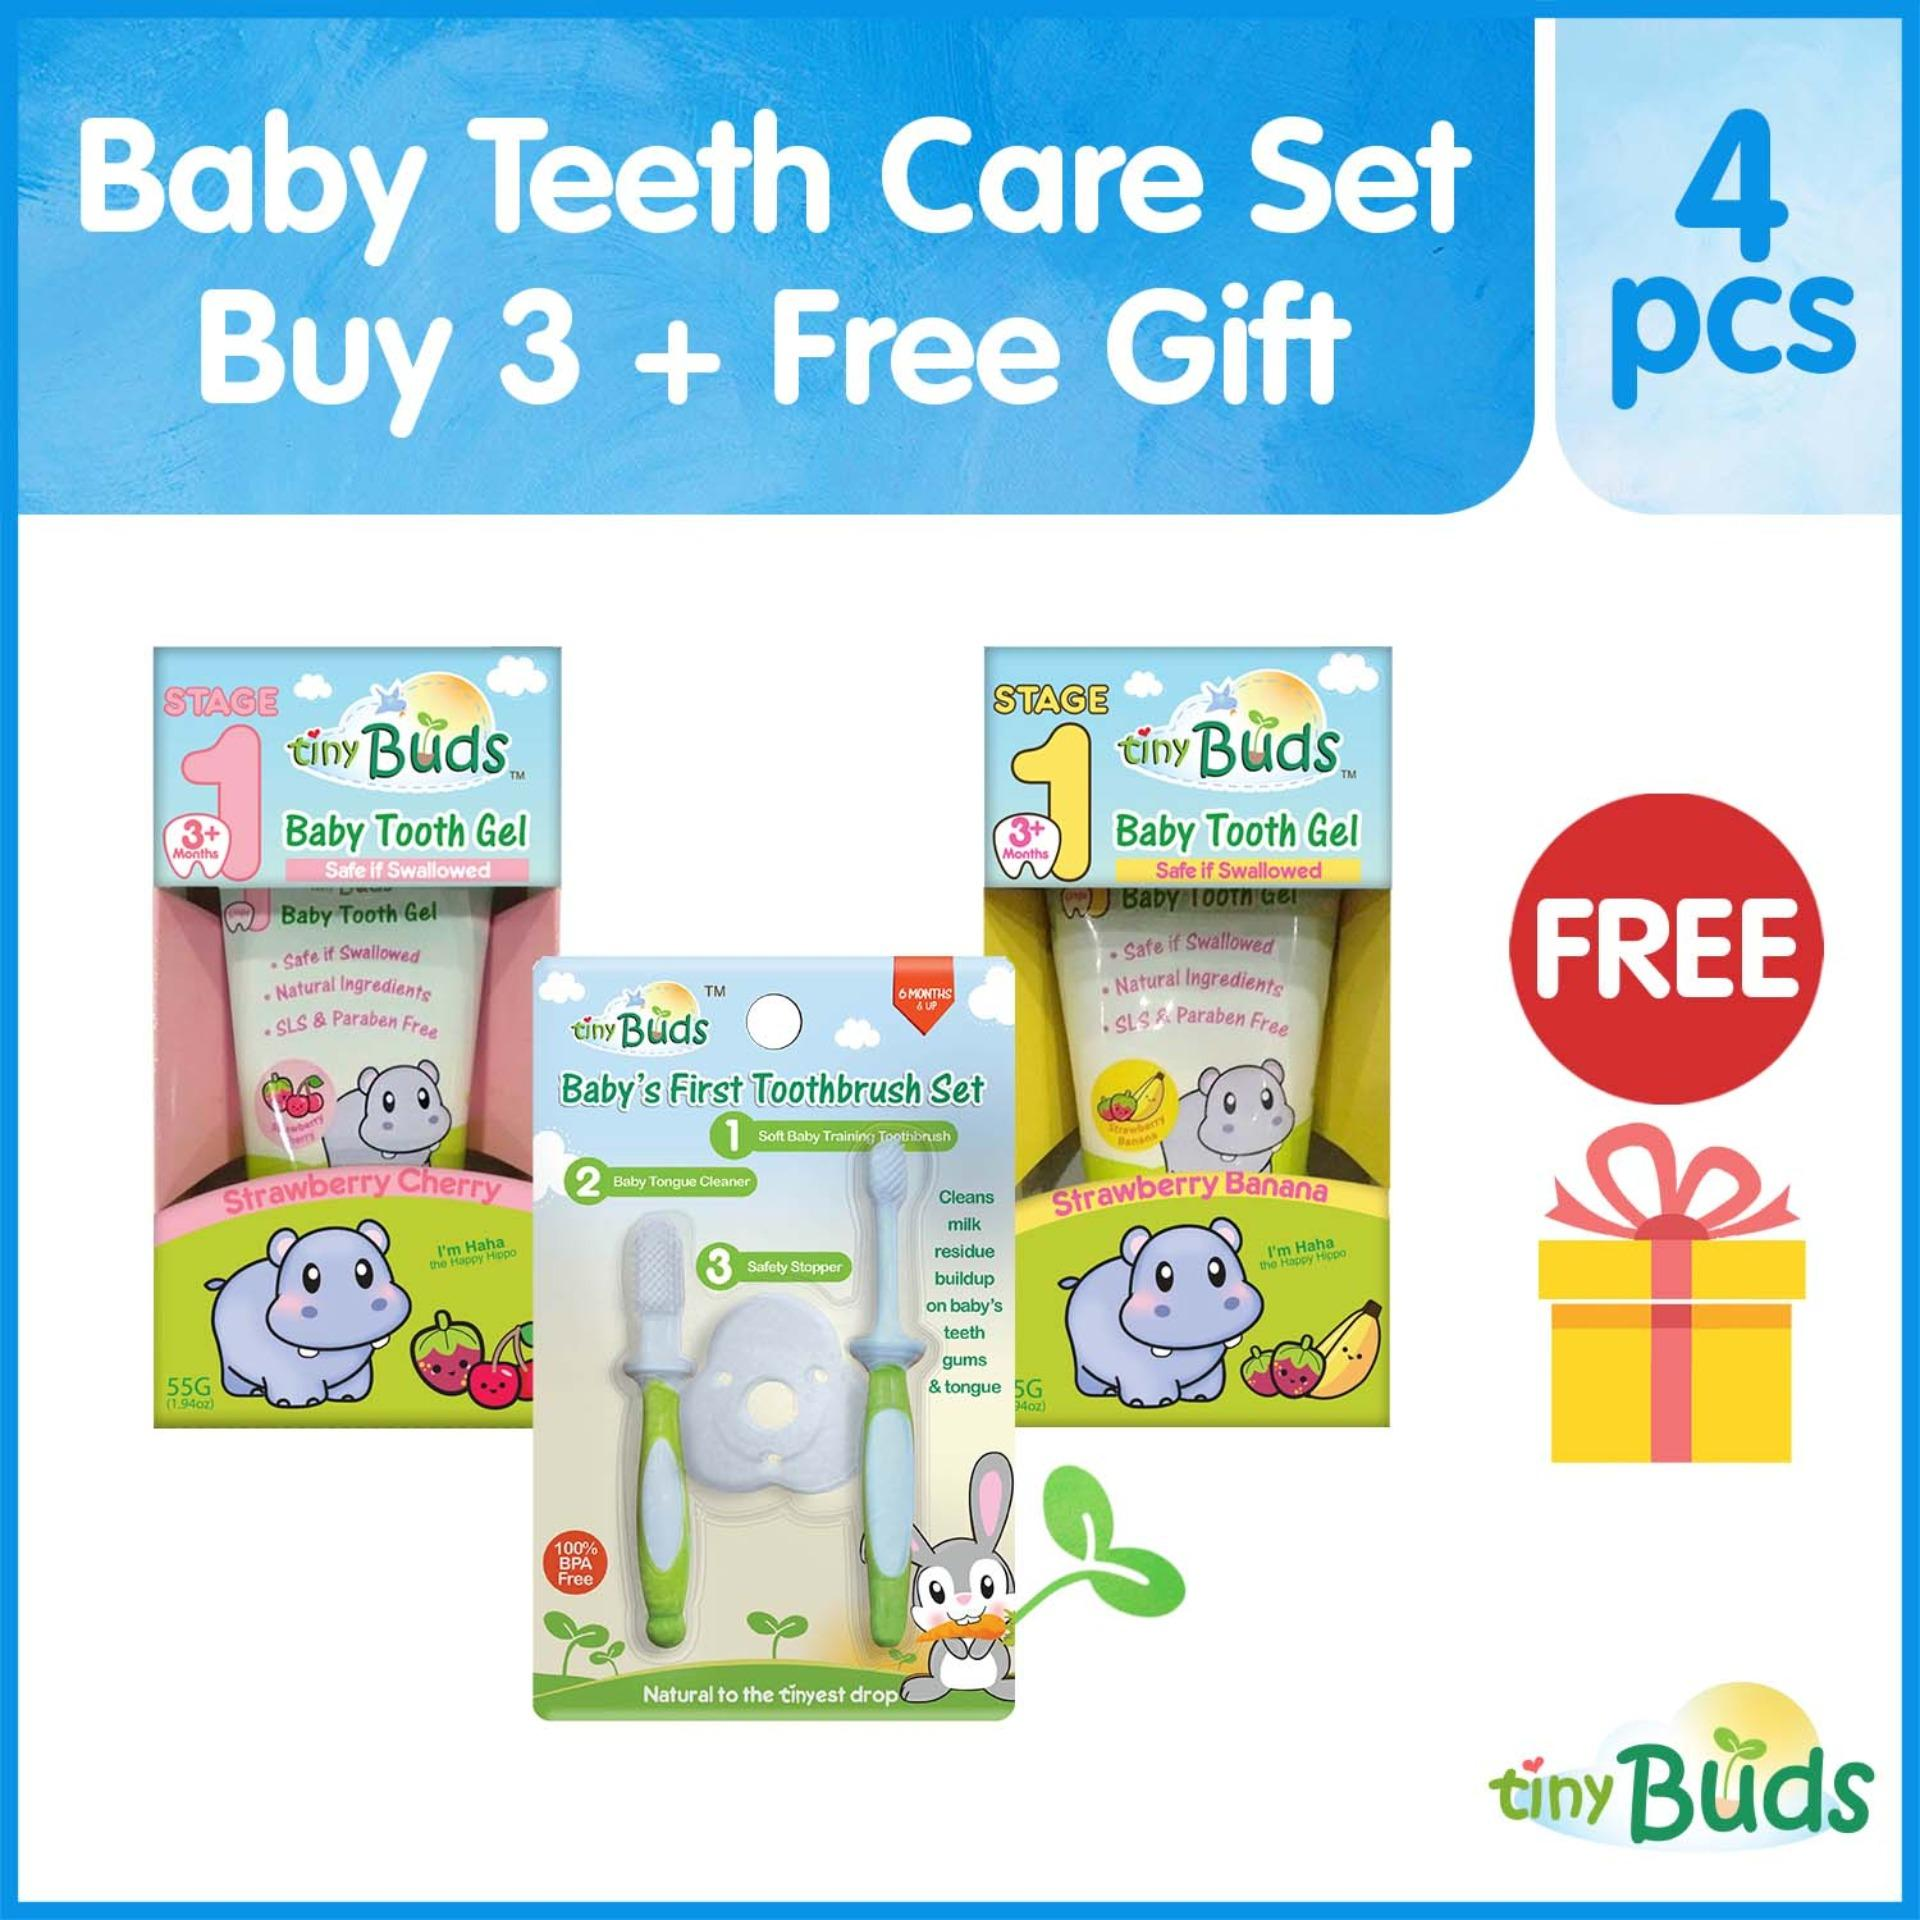 Buy Sell Cheapest Chicco Baby Toothpaste Best Quality Product 360do Tooth Brush For Adults Pink Assorted Flavor Toothgels And Babys First Toothbrush Training Set With Free Teething Snack